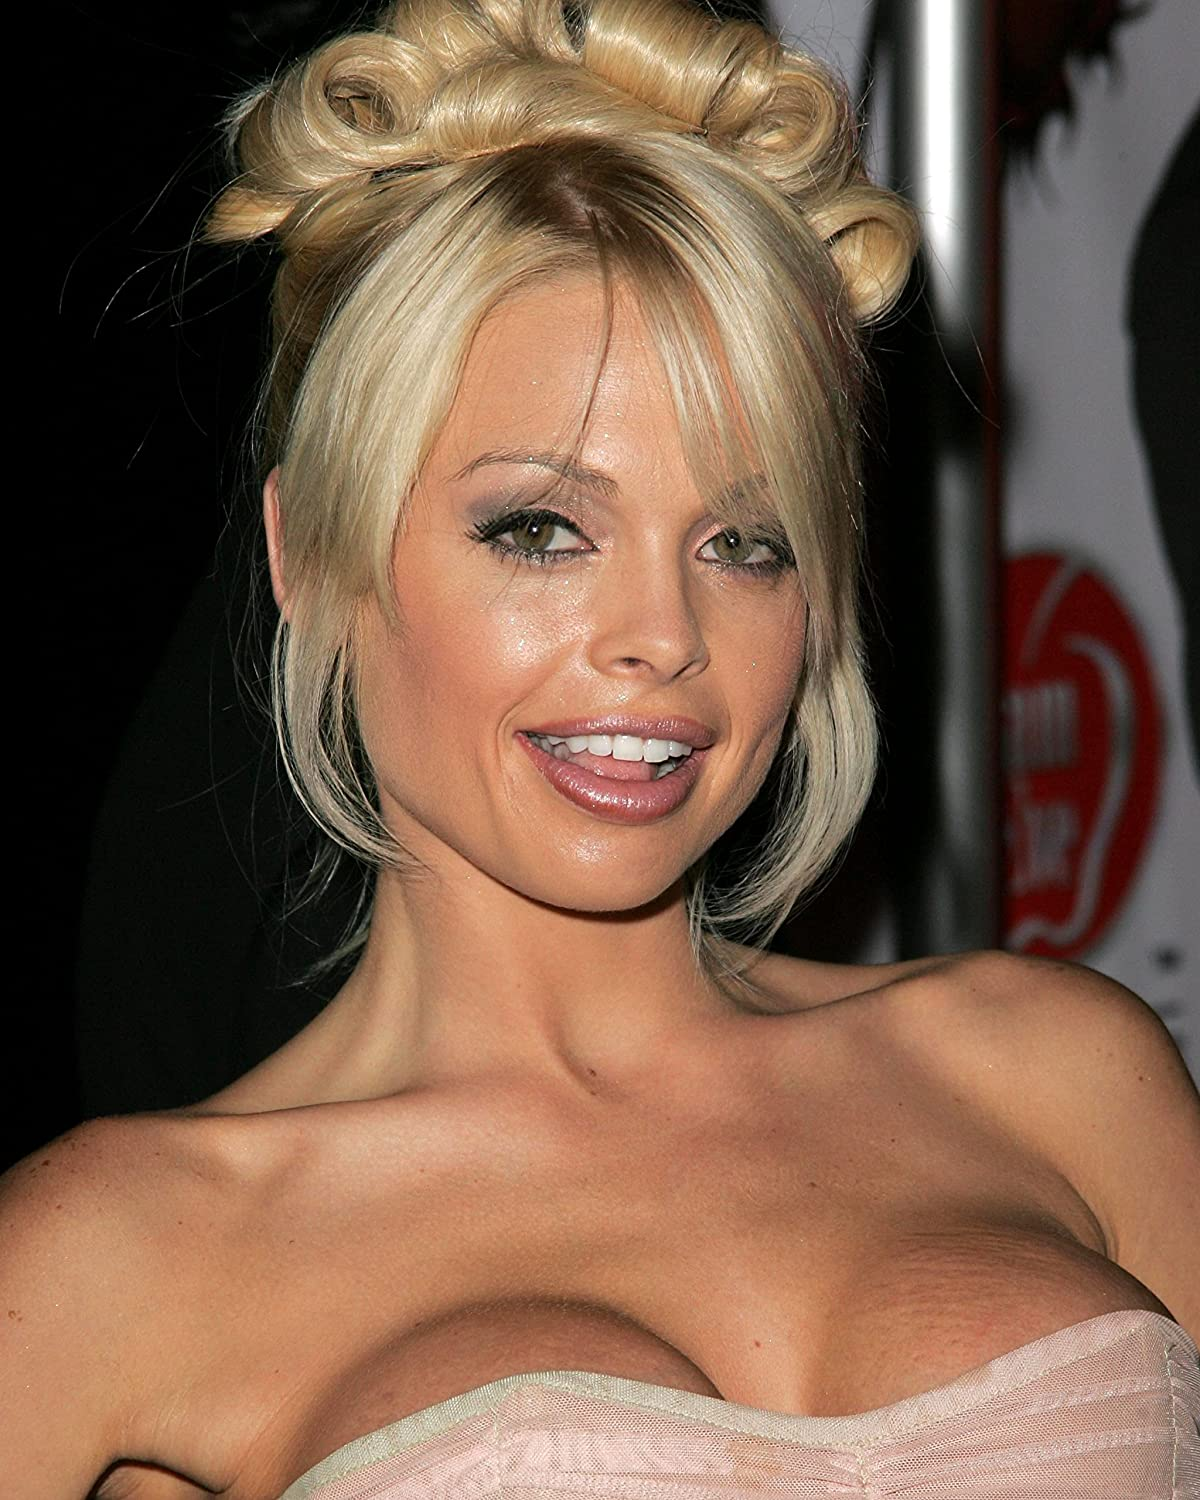 Jesse Jane Wallpapers For IPhone